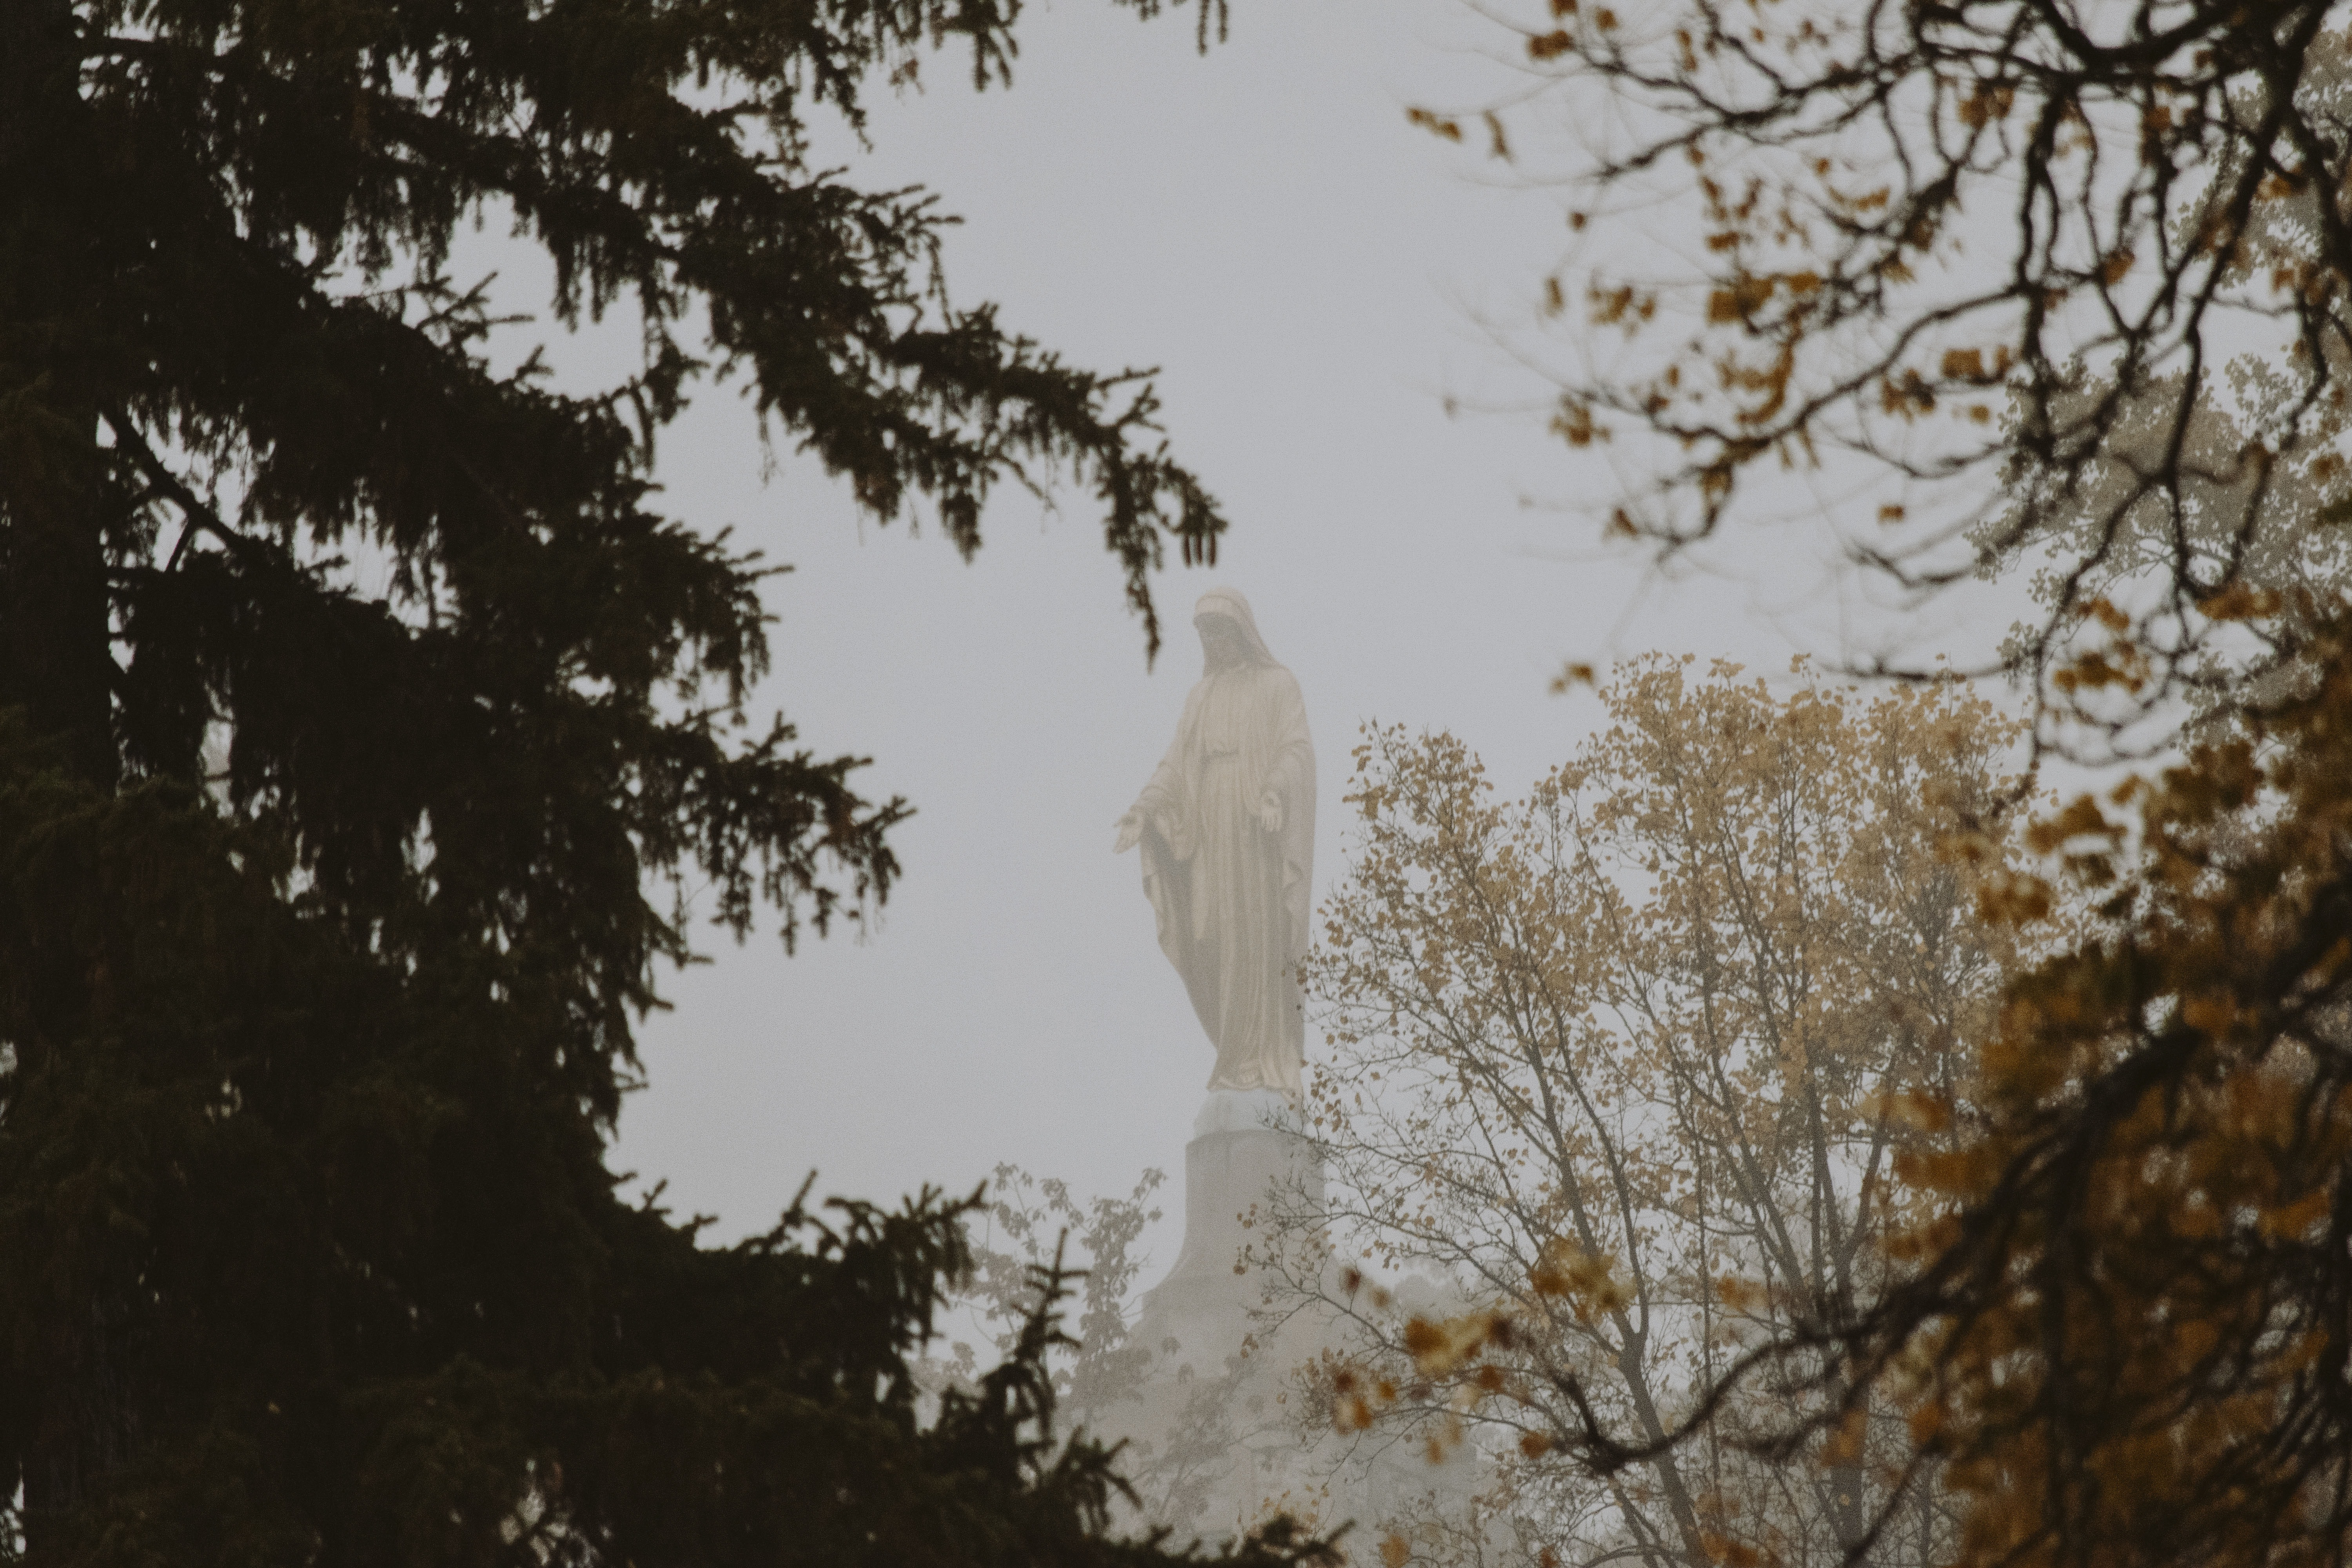 Virgin Mary statue on other side of tree during daytime